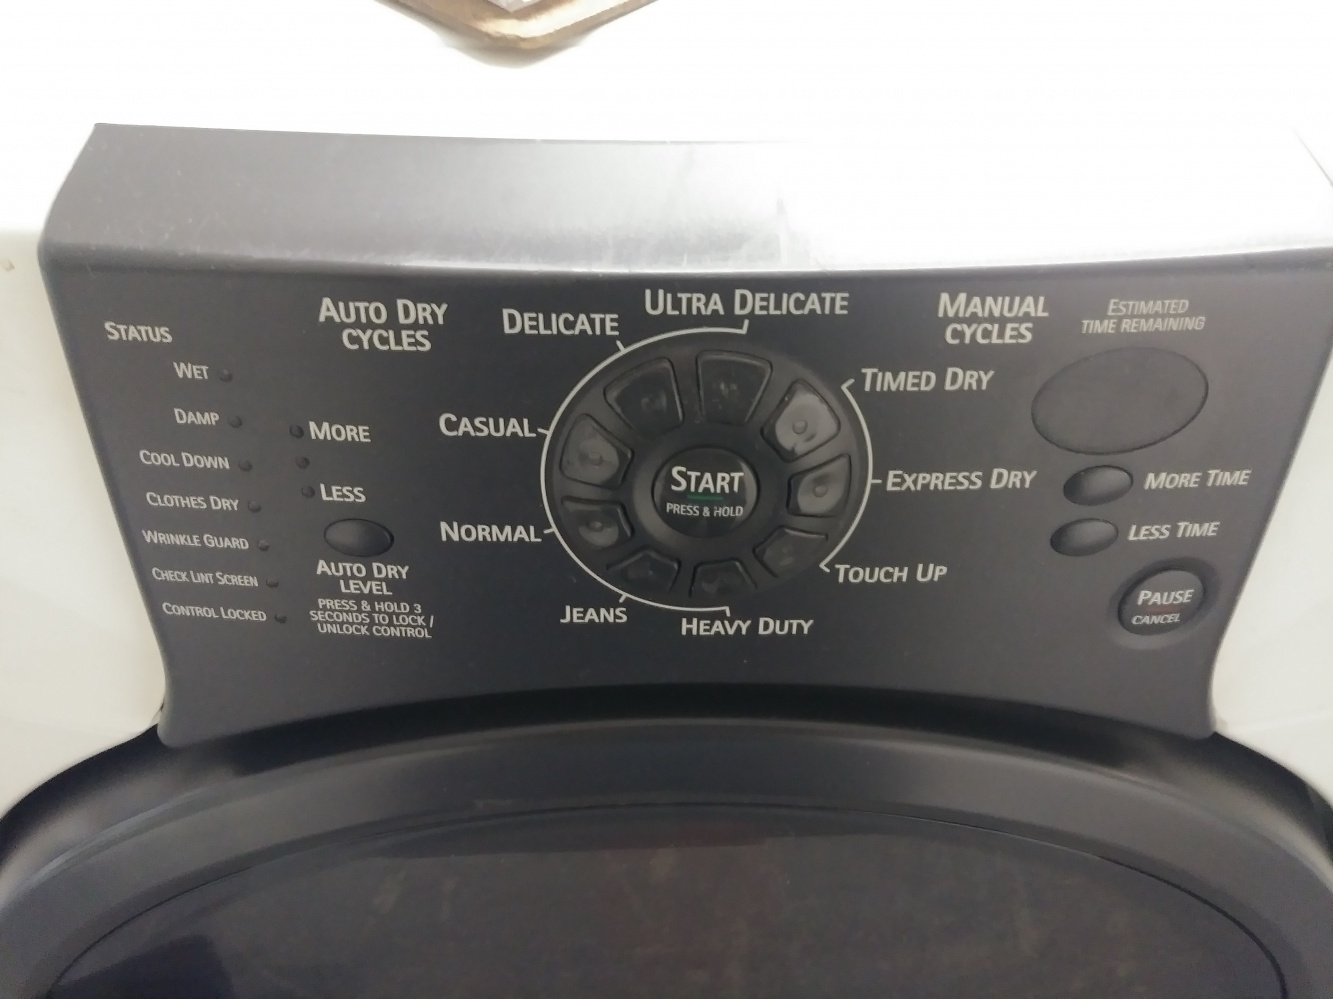 KENMORE ELITE HE3 FRONT LOAD BISQUE GAS DRYER - Kimo's